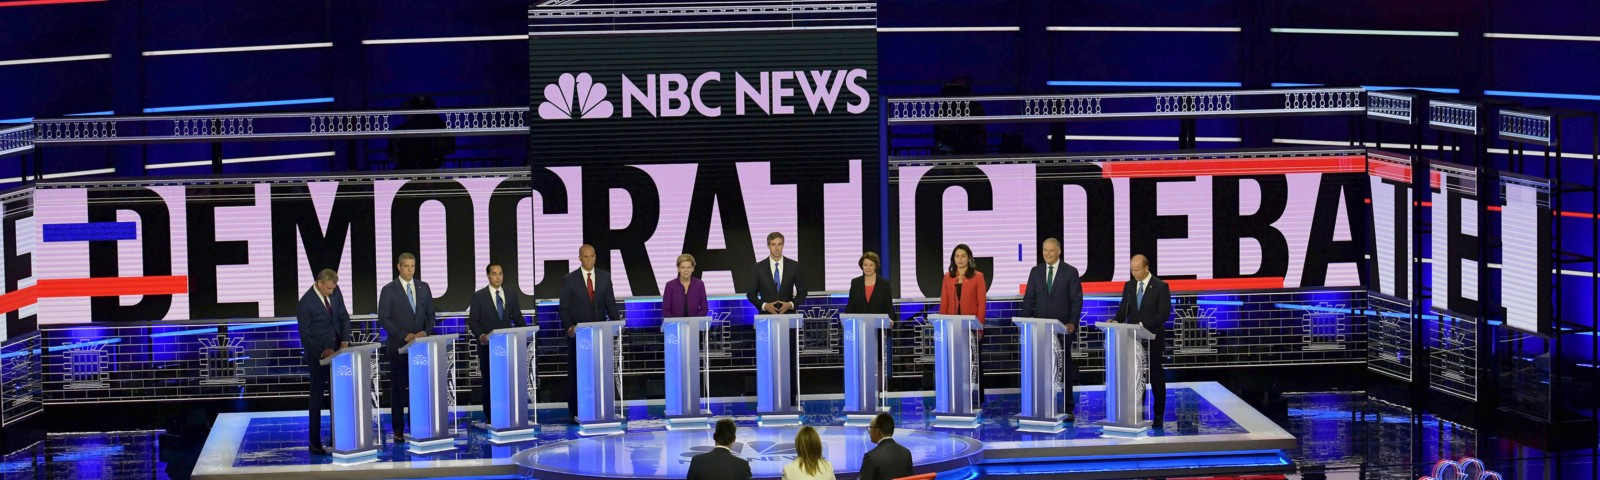 All the Democratic presidential candidates are on stage during the First Democratic Debate in 2019.